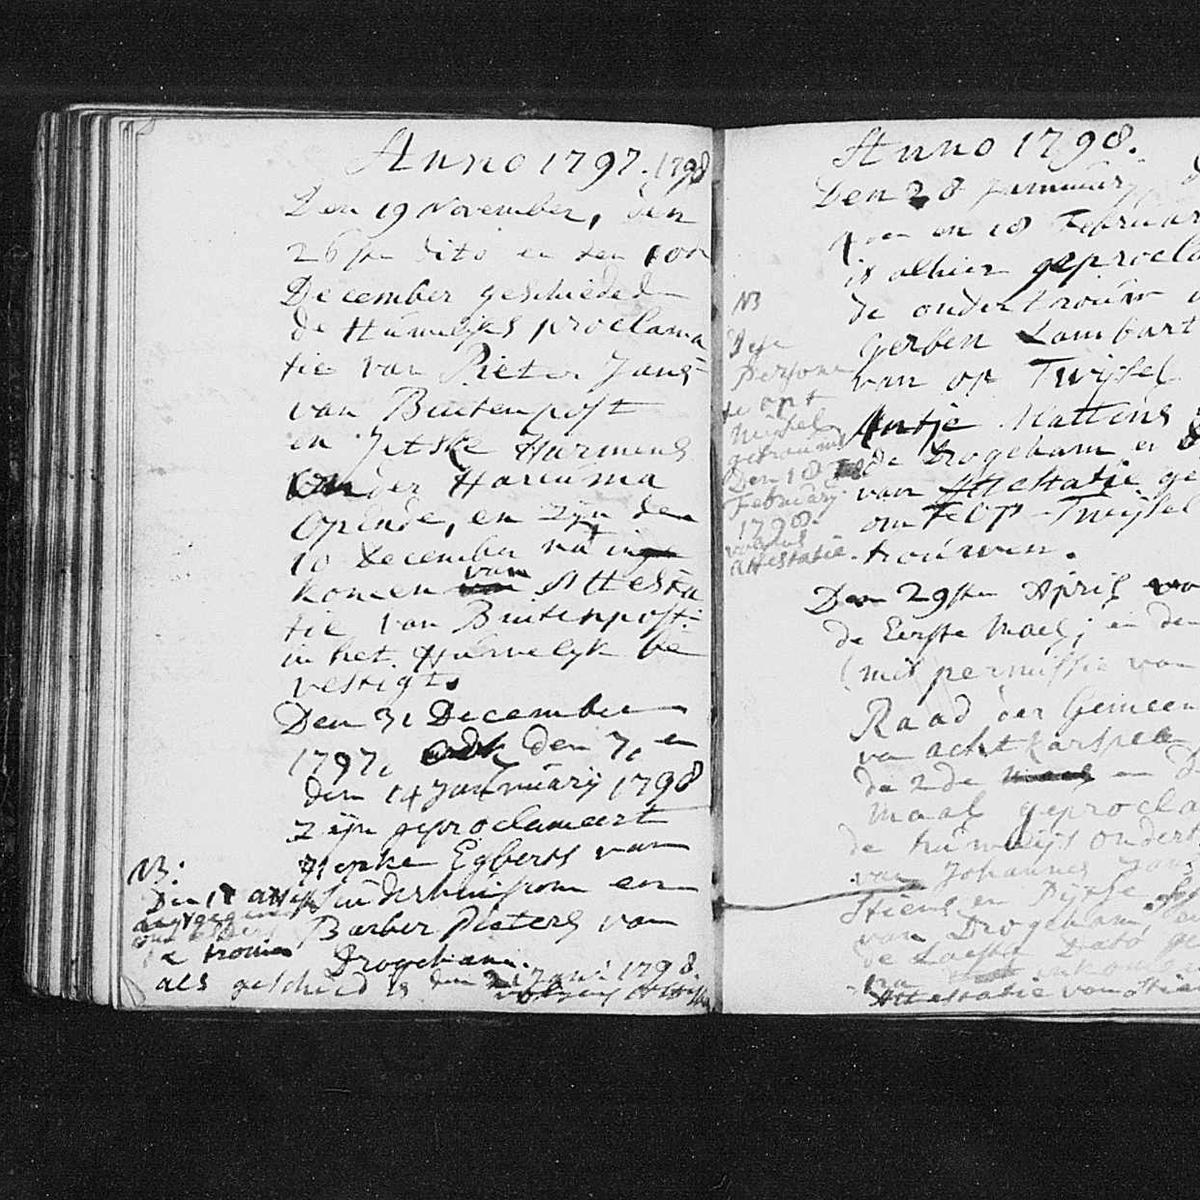 Registry of marriages, Nederlands Hervormde kerk, Drogeham, 1796-1798, sheet 43